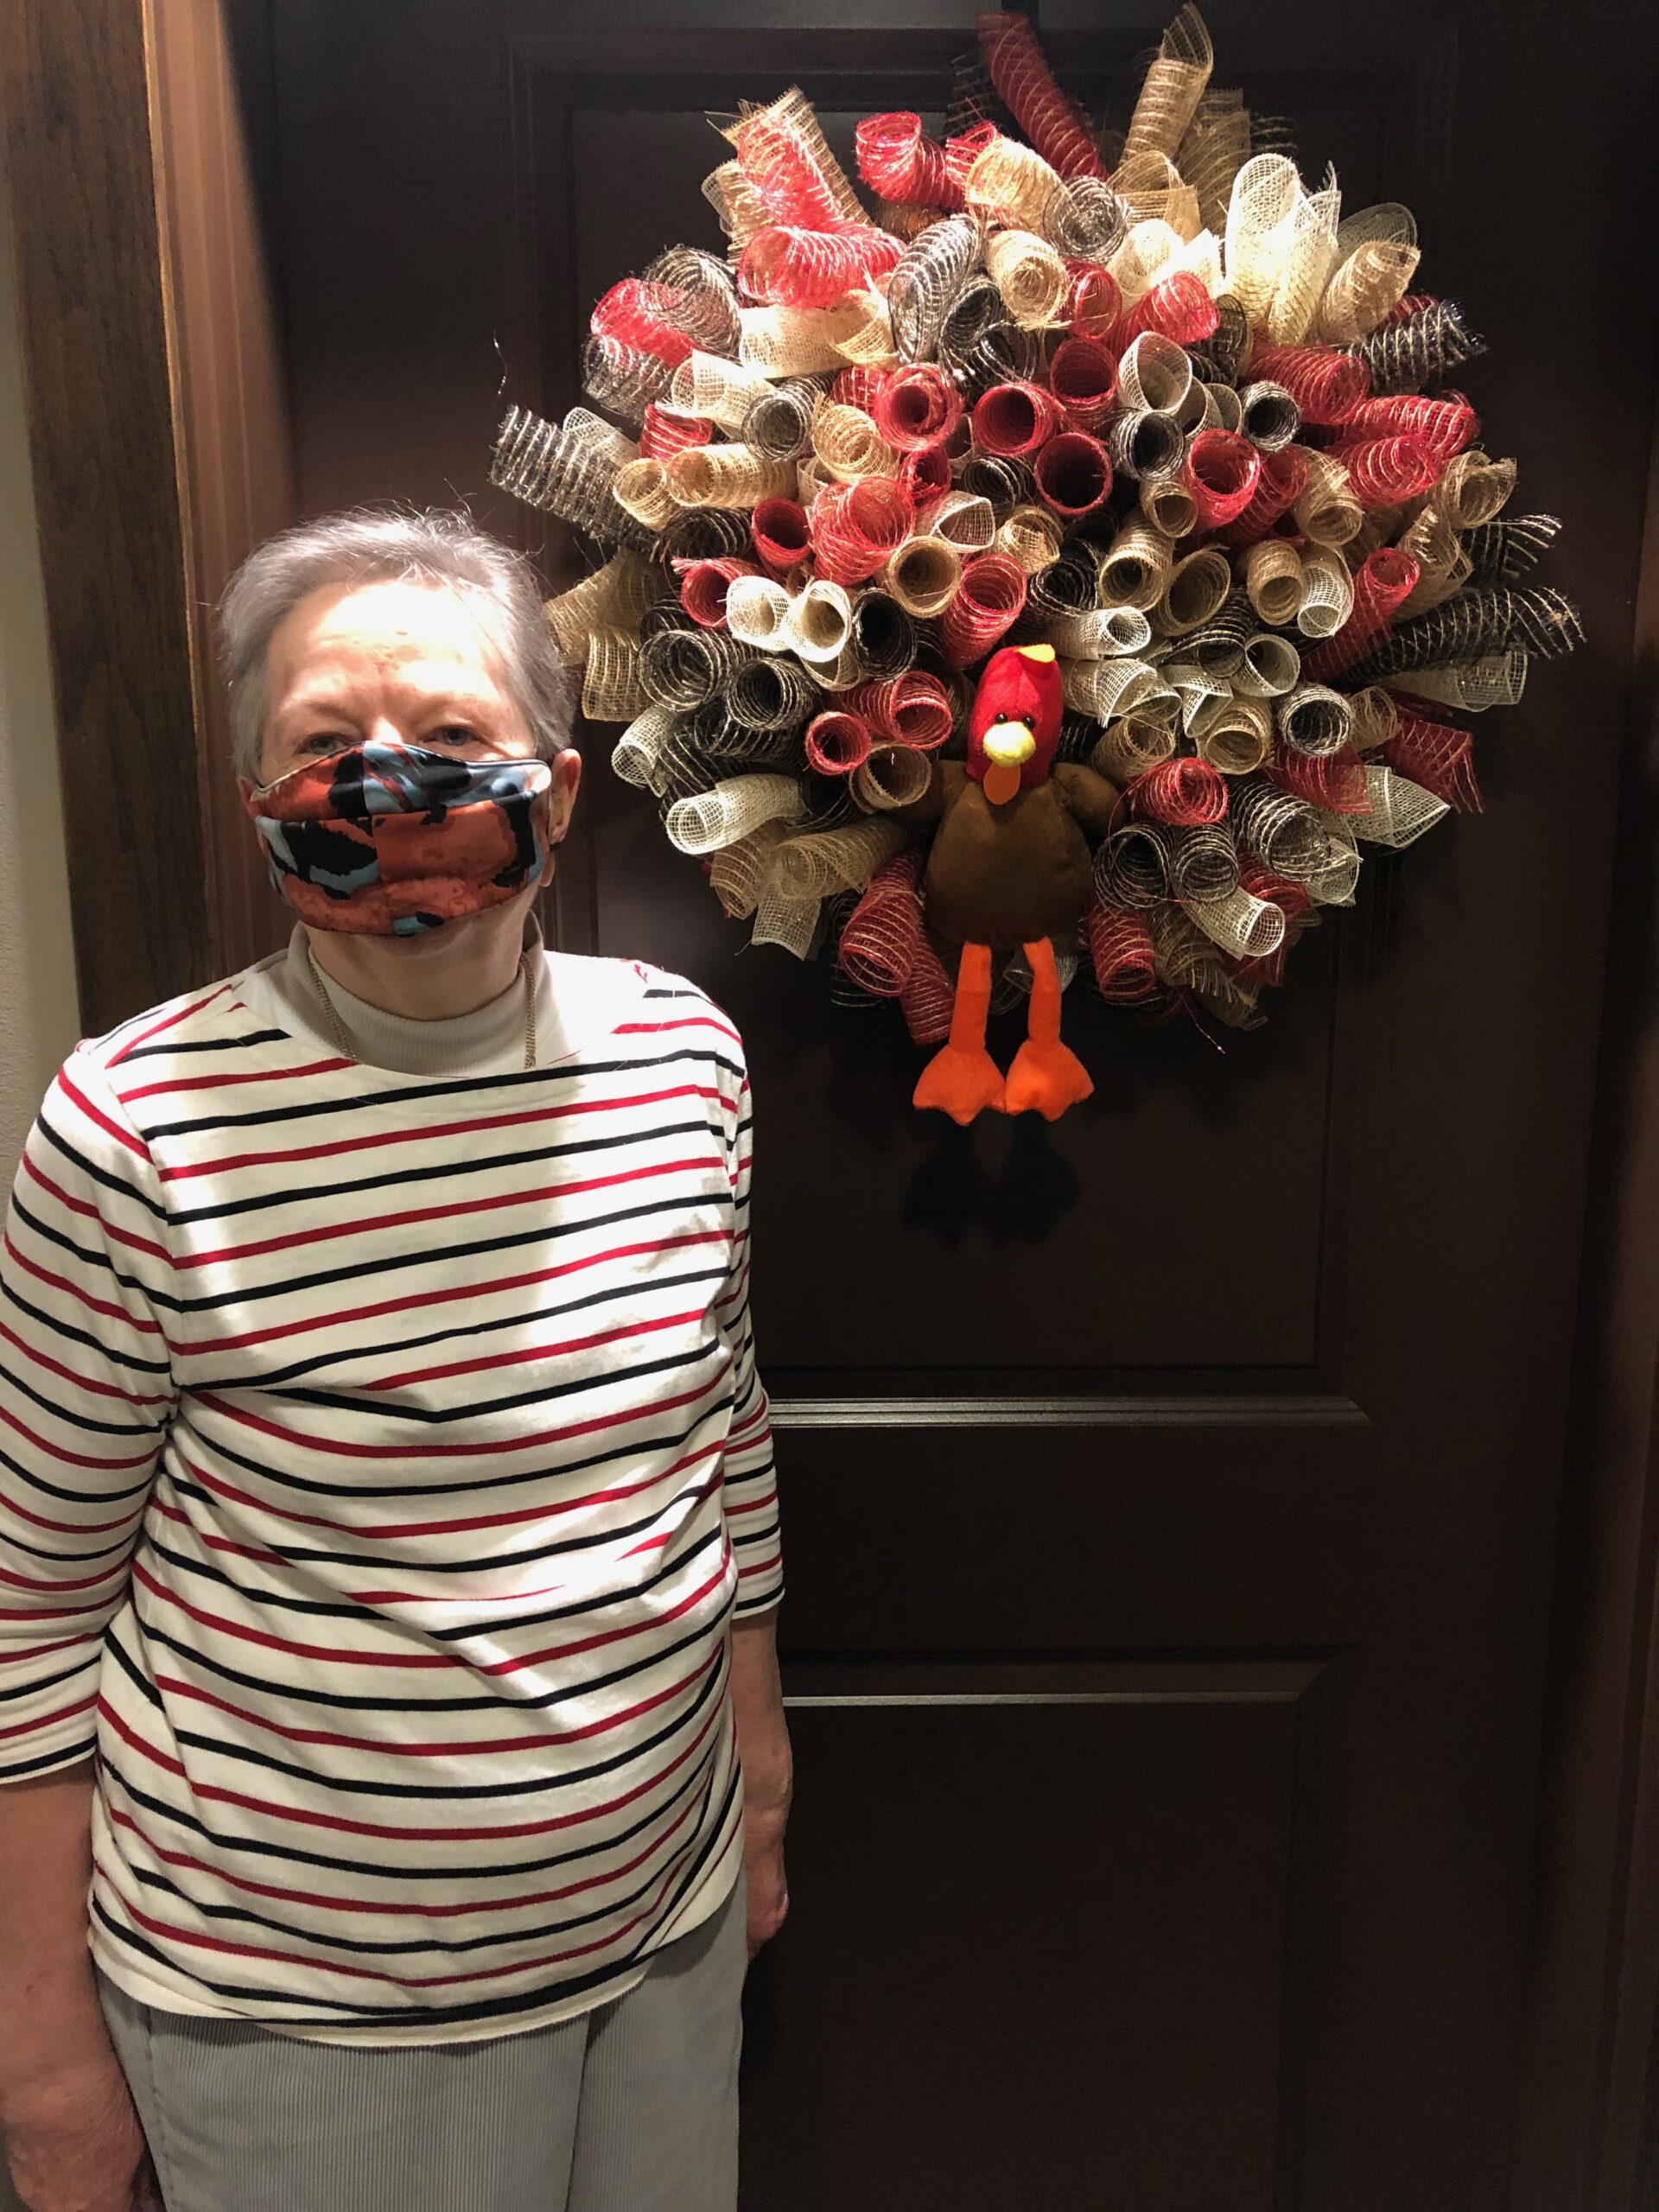 Primrose Holiday Decorating- Some residents enjoy decorating for the Fall season and some are ready for the Christmas season. Either way we keep it very festive always at Primrose!